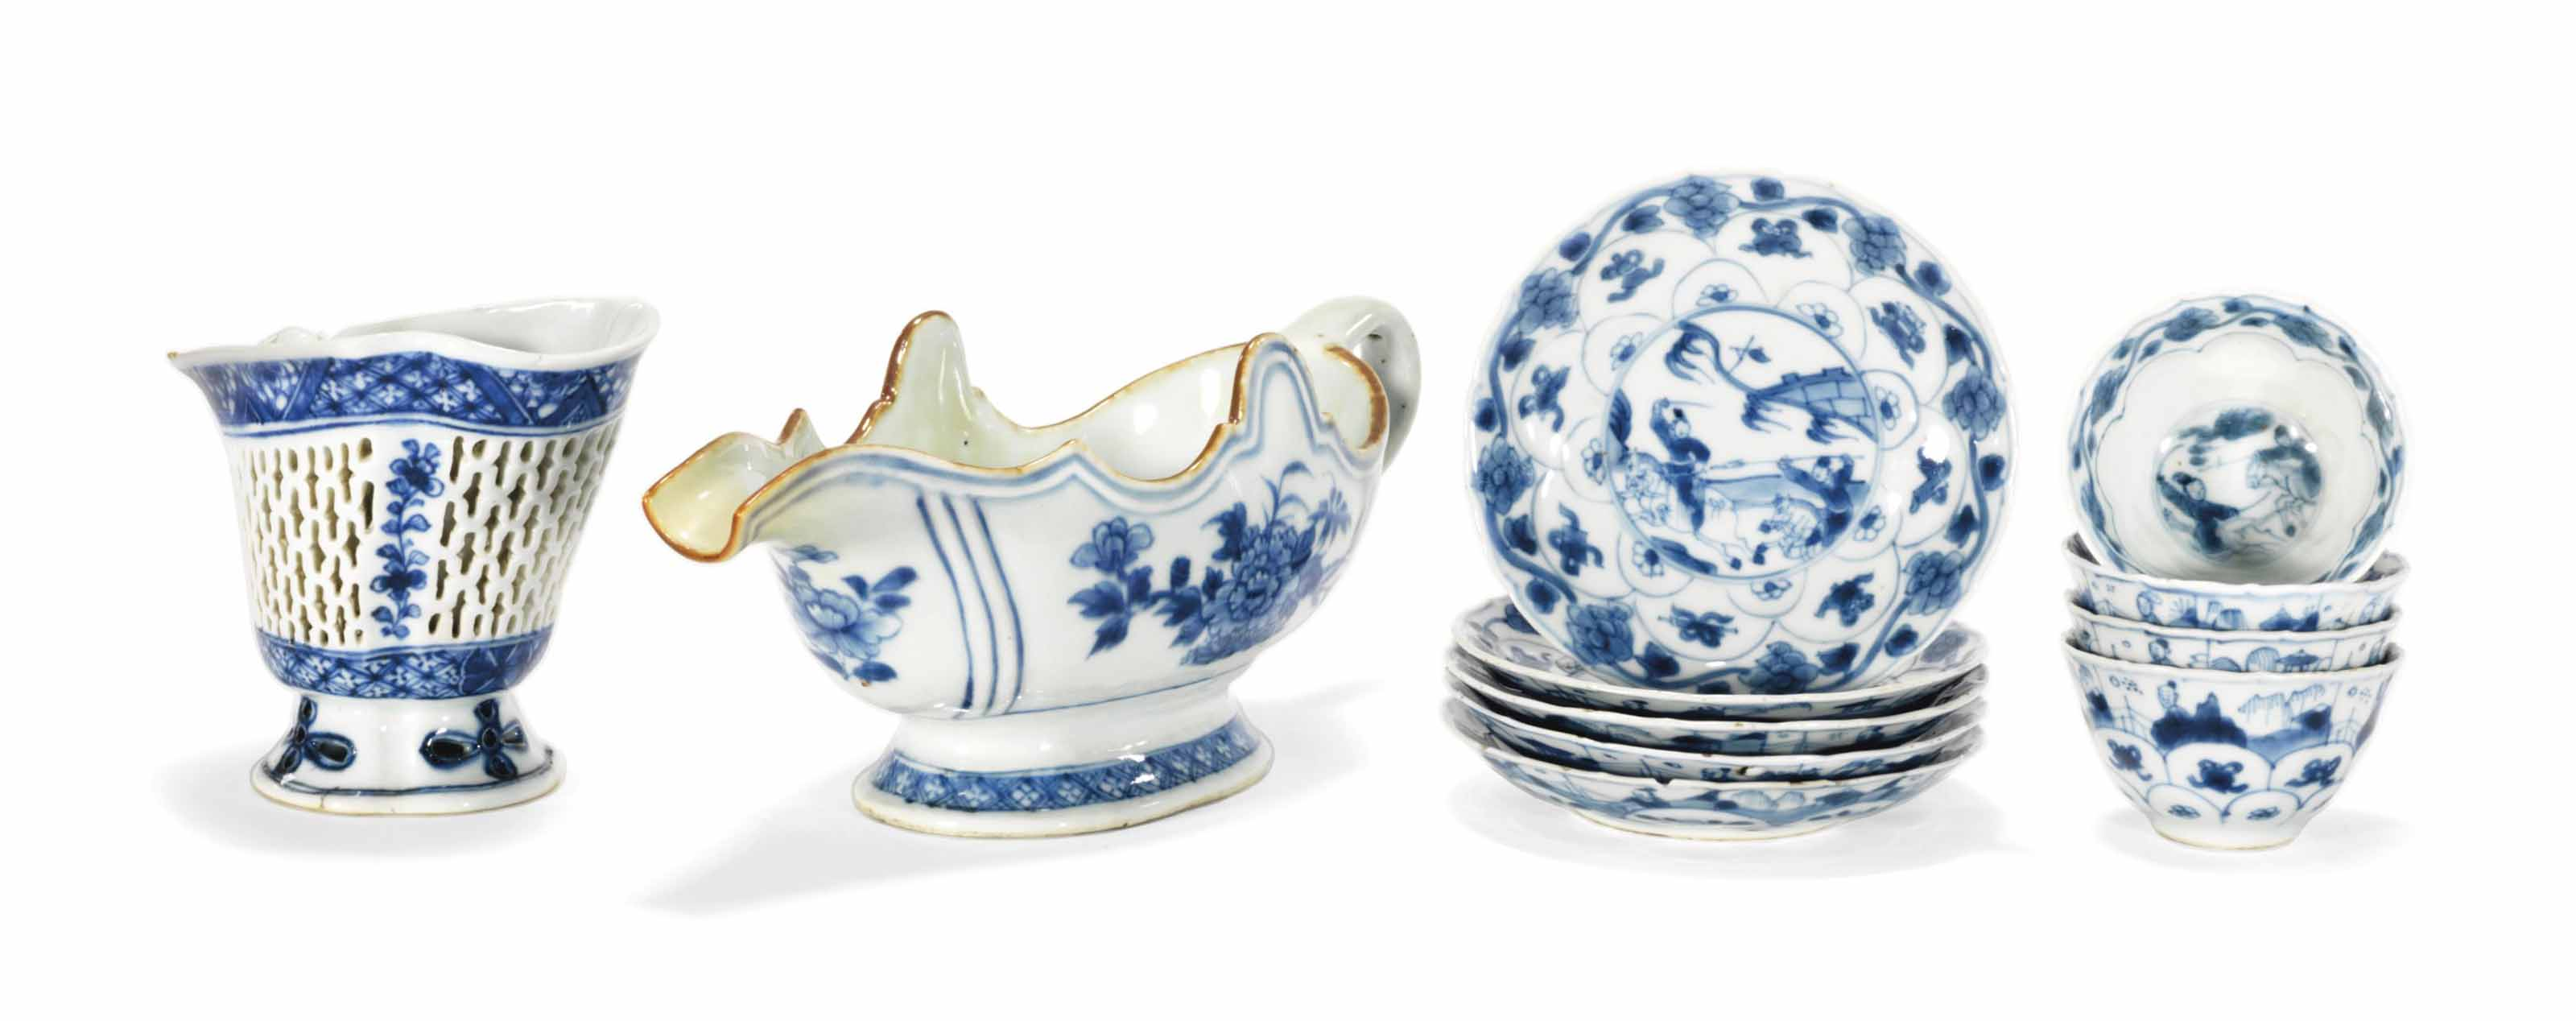 A CHINESE BLUE AND WHITE LIBAT